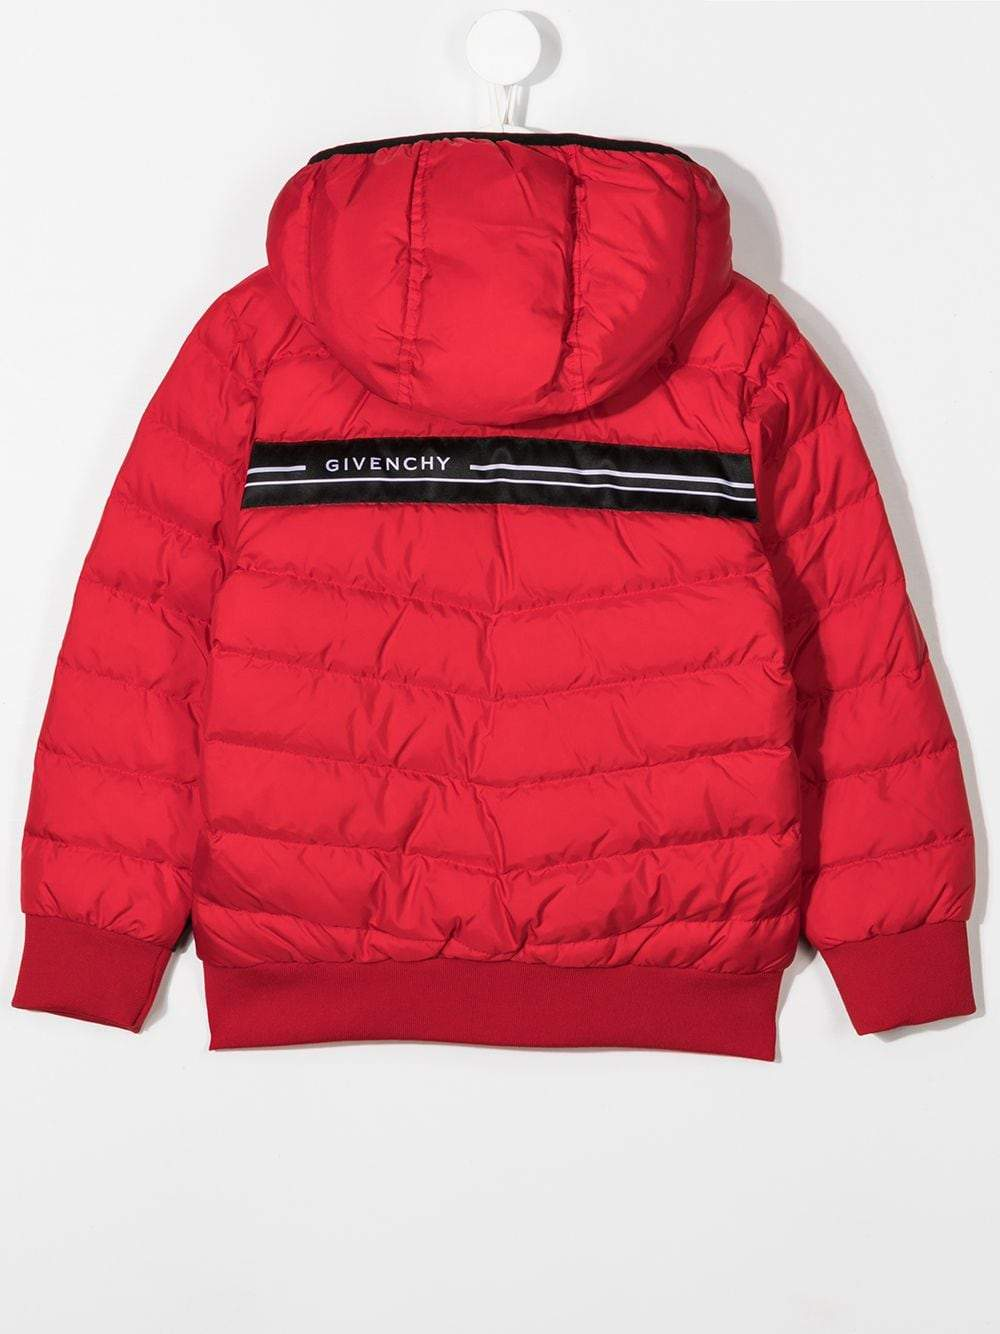 GIVENCHY KIDS Tape Logo Coat Red